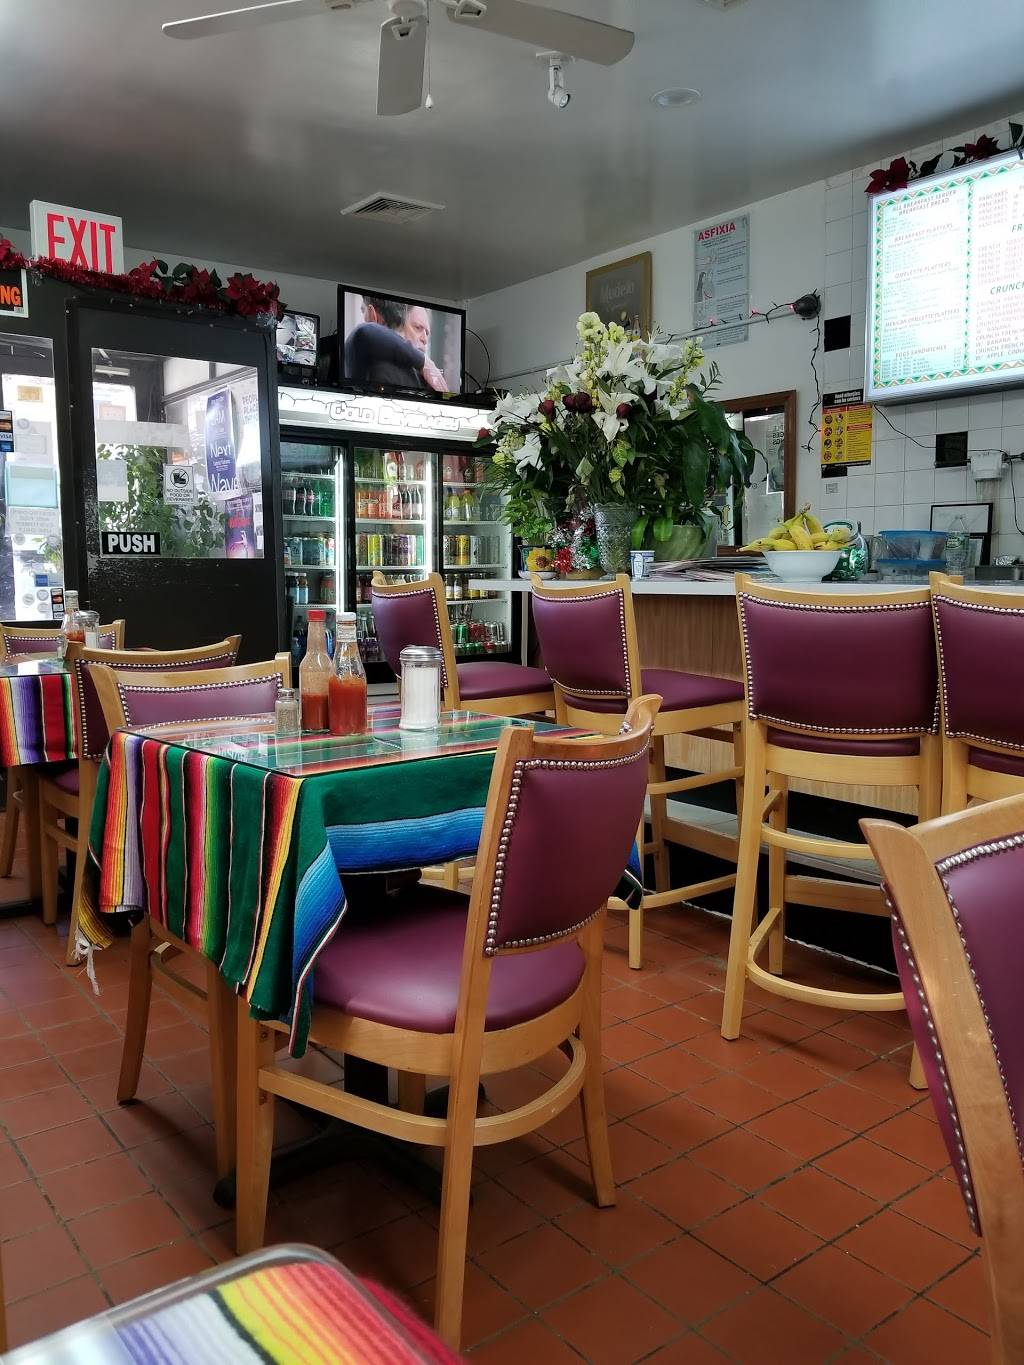 Acapulco | restaurant | 1116 Manhattan Ave, Brooklyn, NY 11222, USA | 7183498429 OR +1 718-349-8429